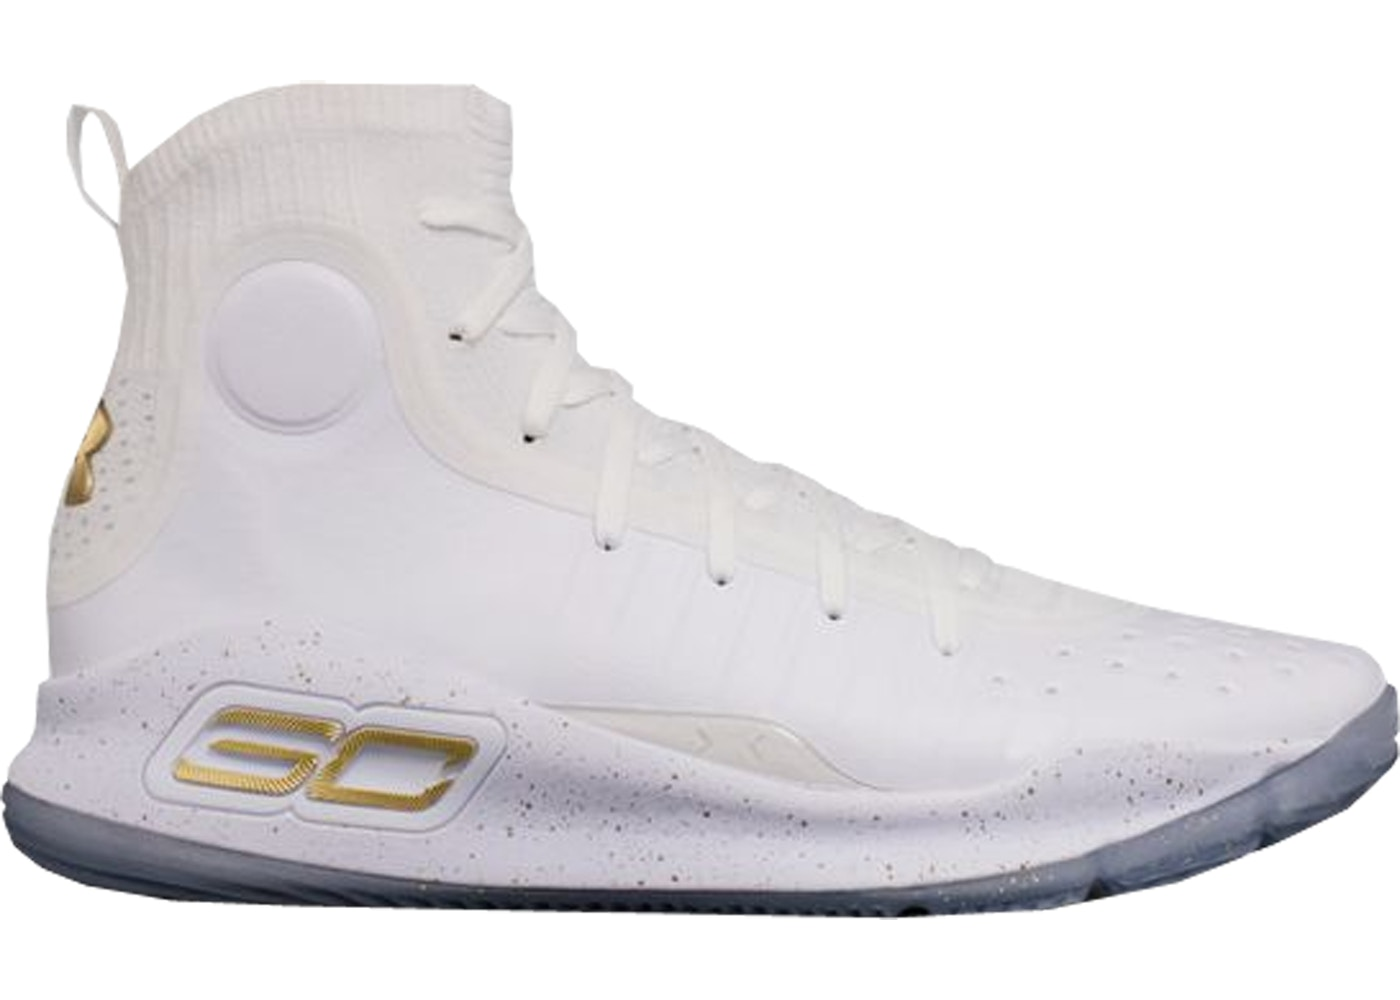 separation shoes 91018 882e3 Under Armour Curry 4 White Gold